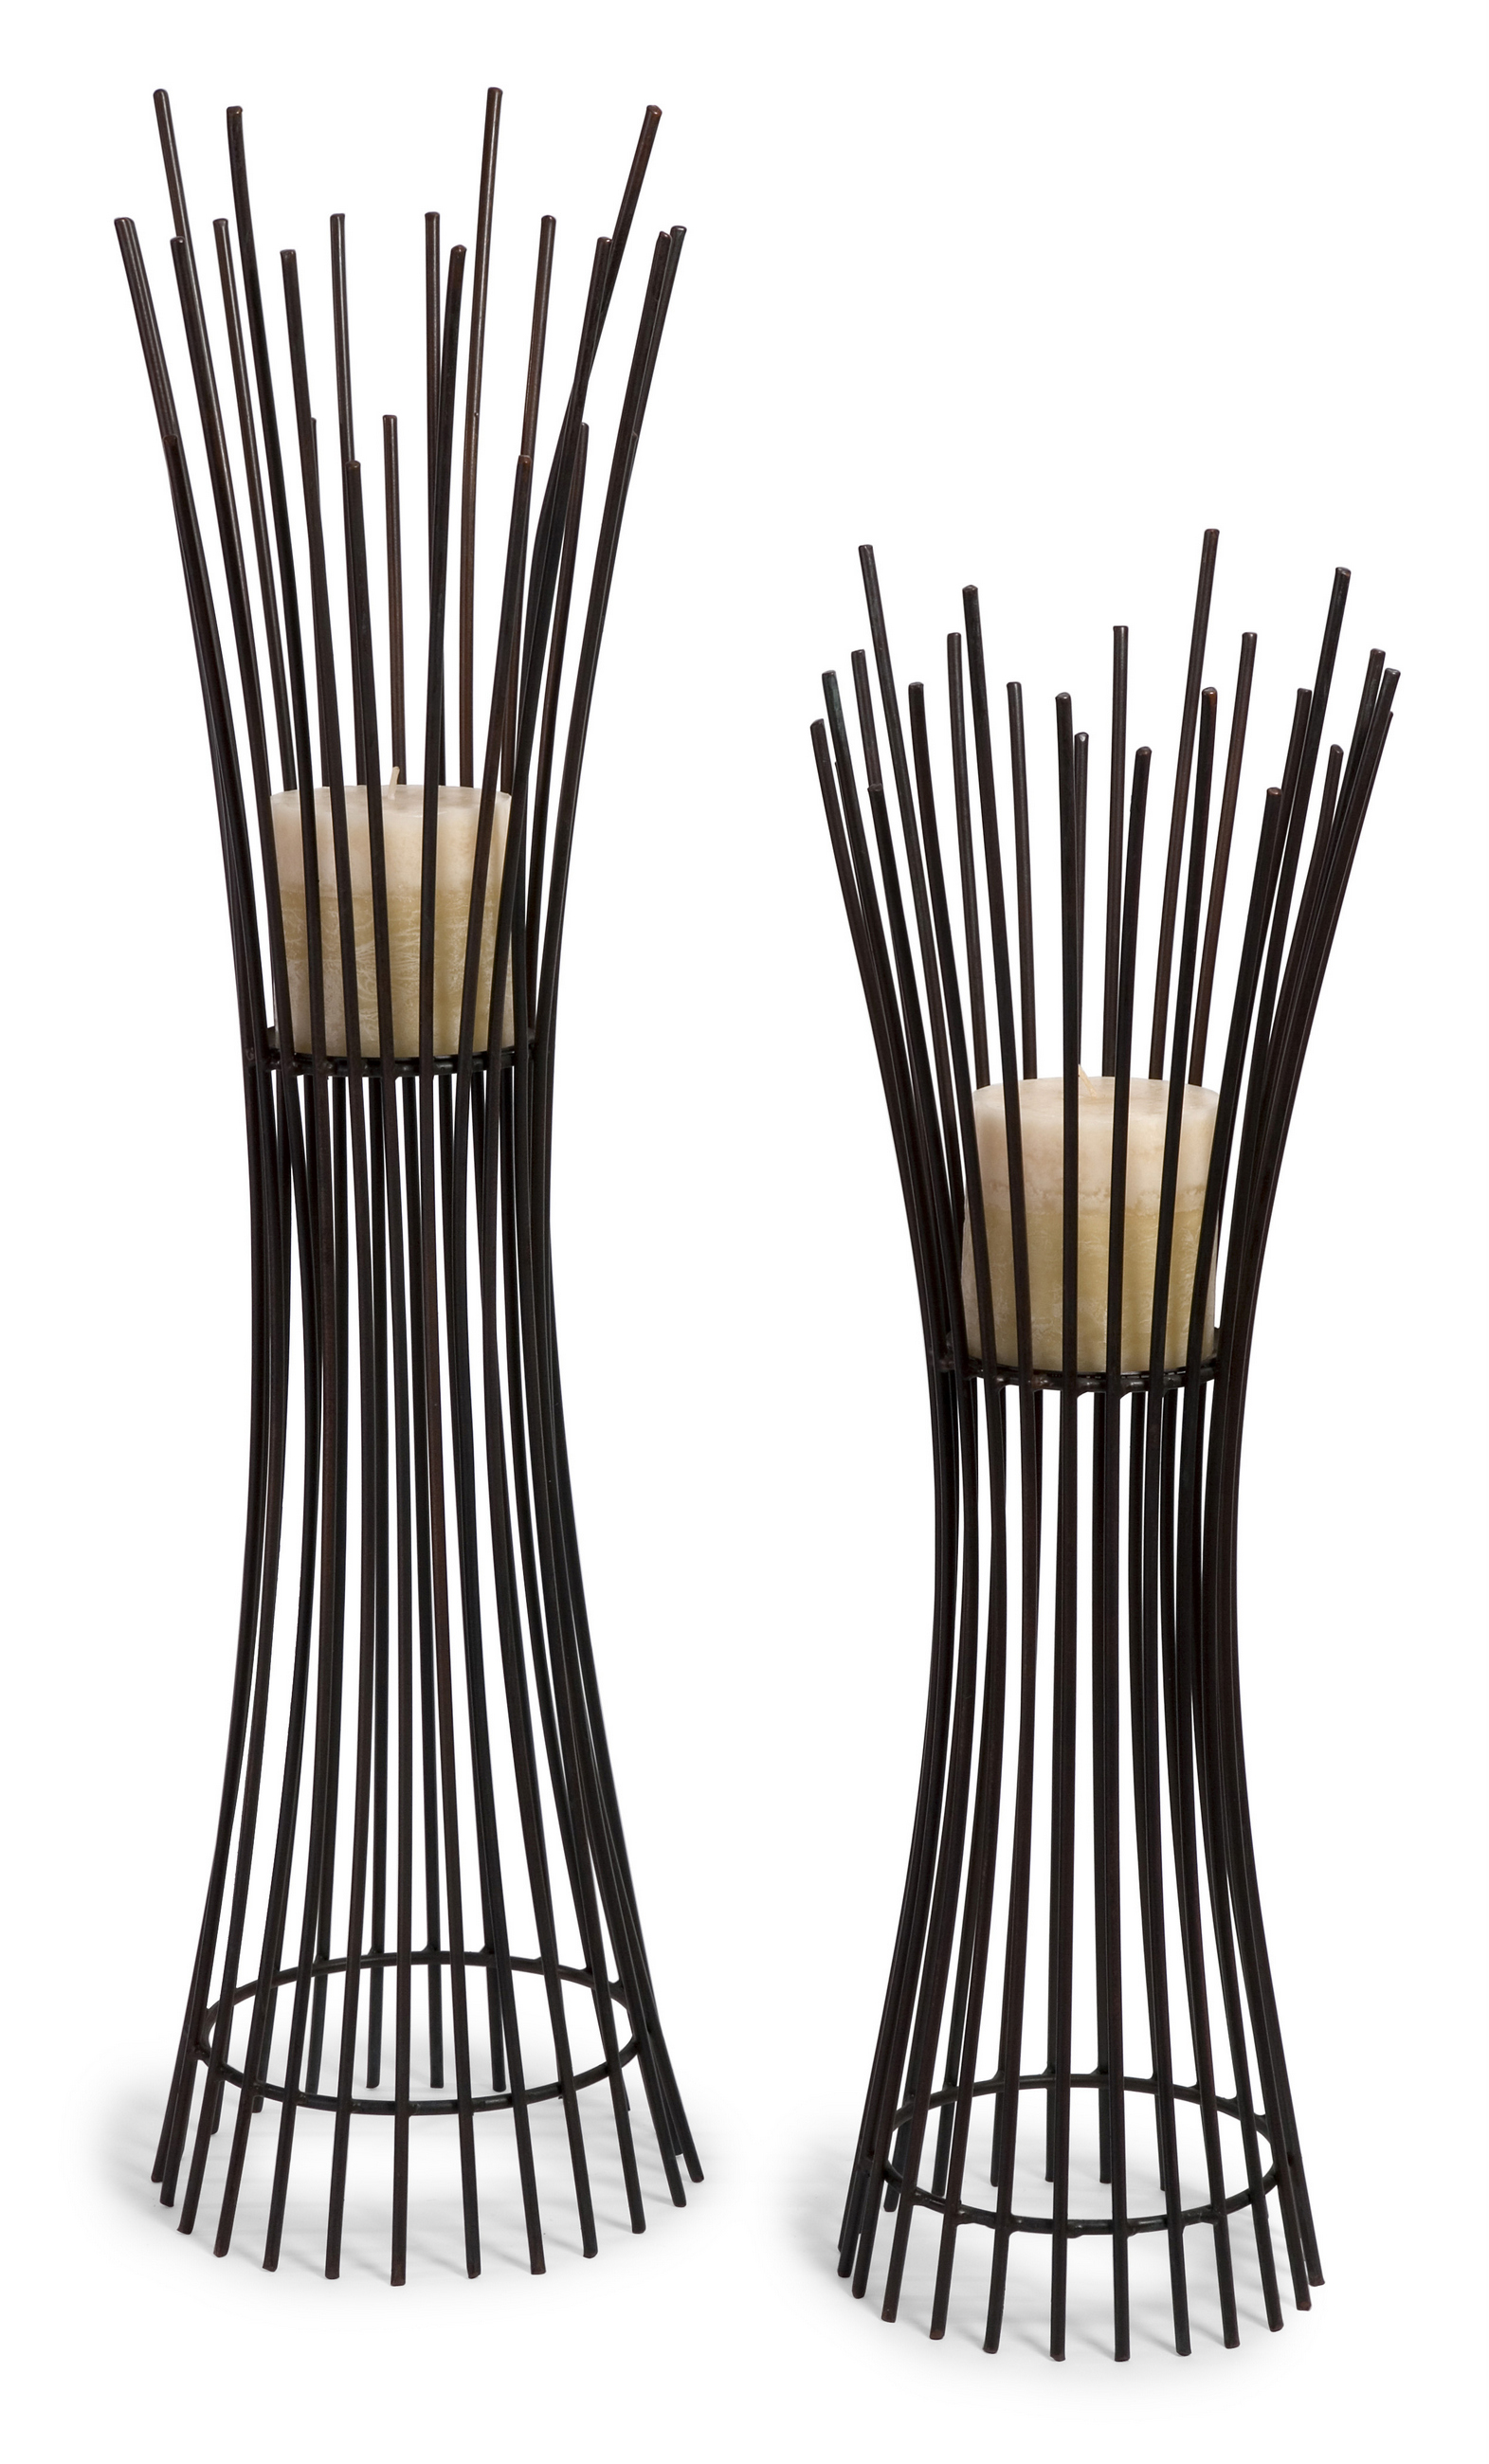 Contemporary Styled Metal Candle Holder Duo Set of 2 by Benzara